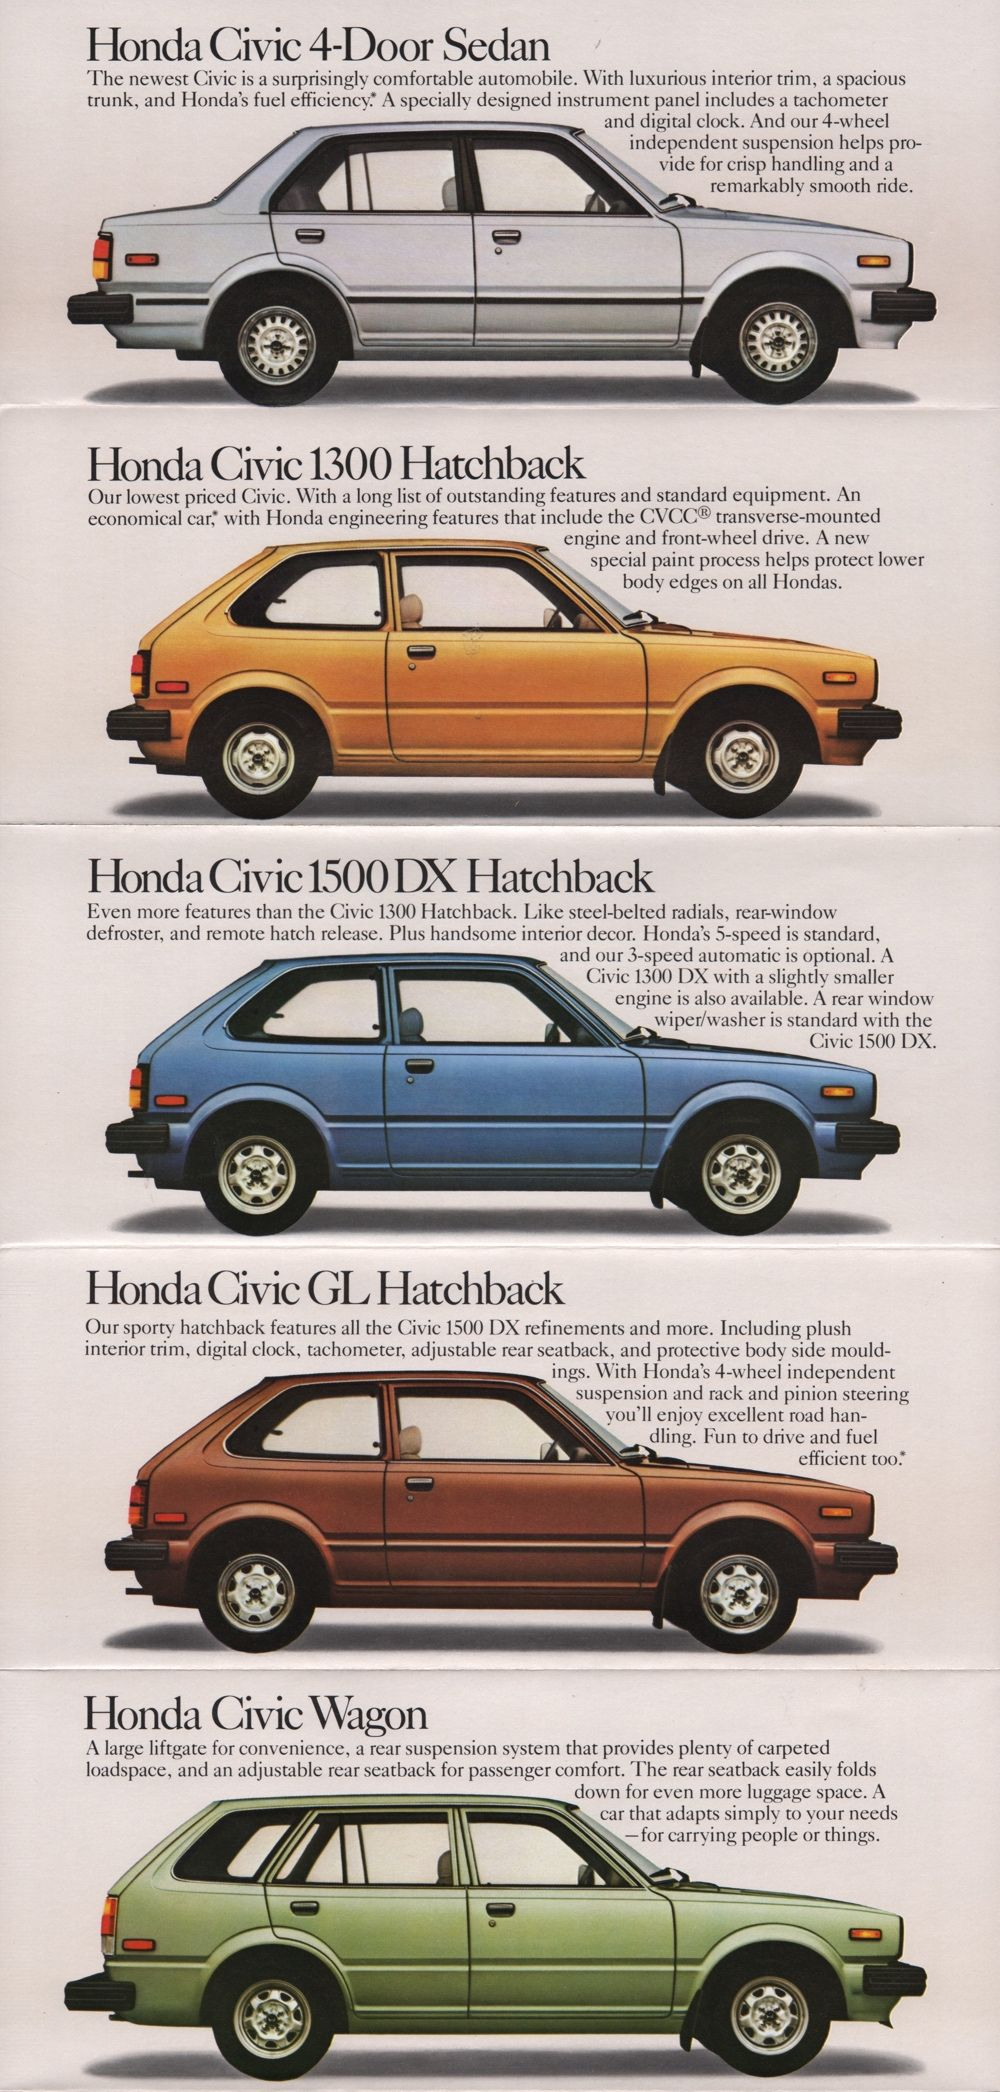 4 Door Civic Hatchback : civic, hatchback, Vintage, Japanese, Autos